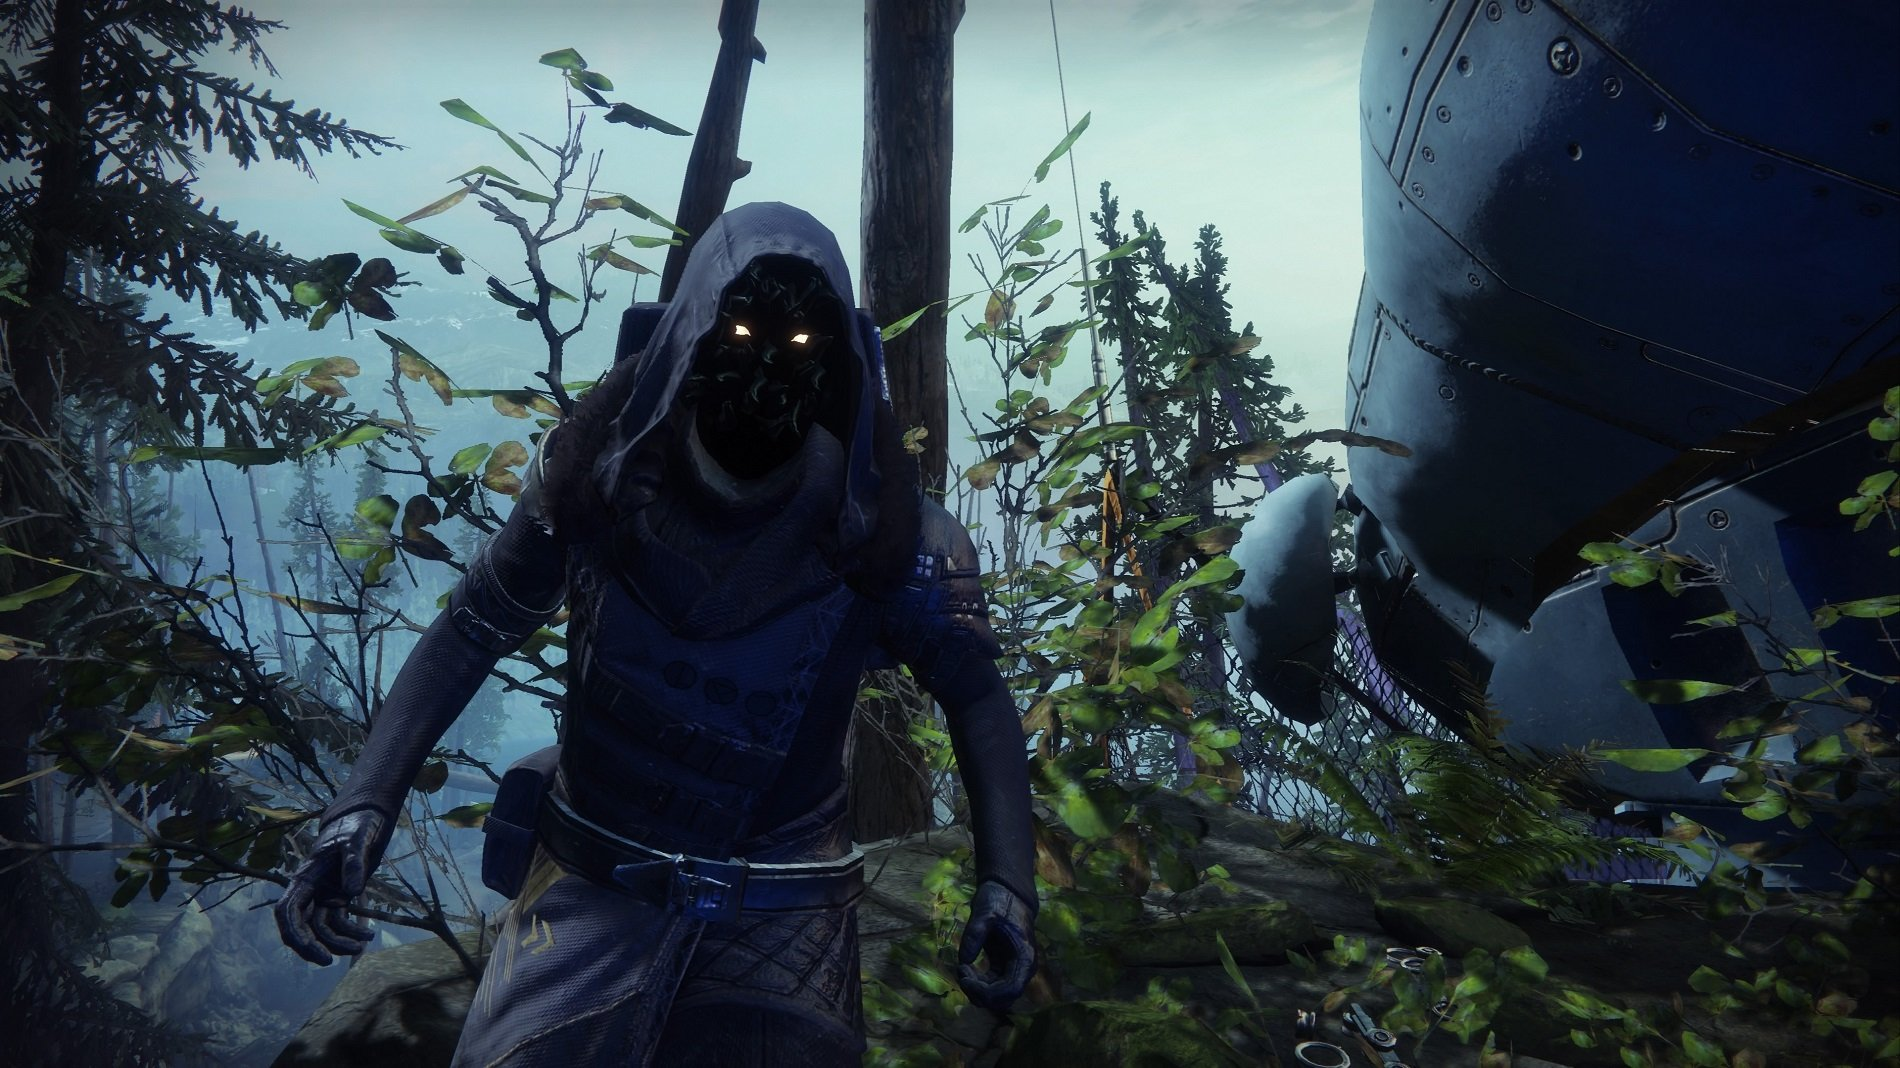 Where to find Xur in Destiny 2 - July 24, 2020